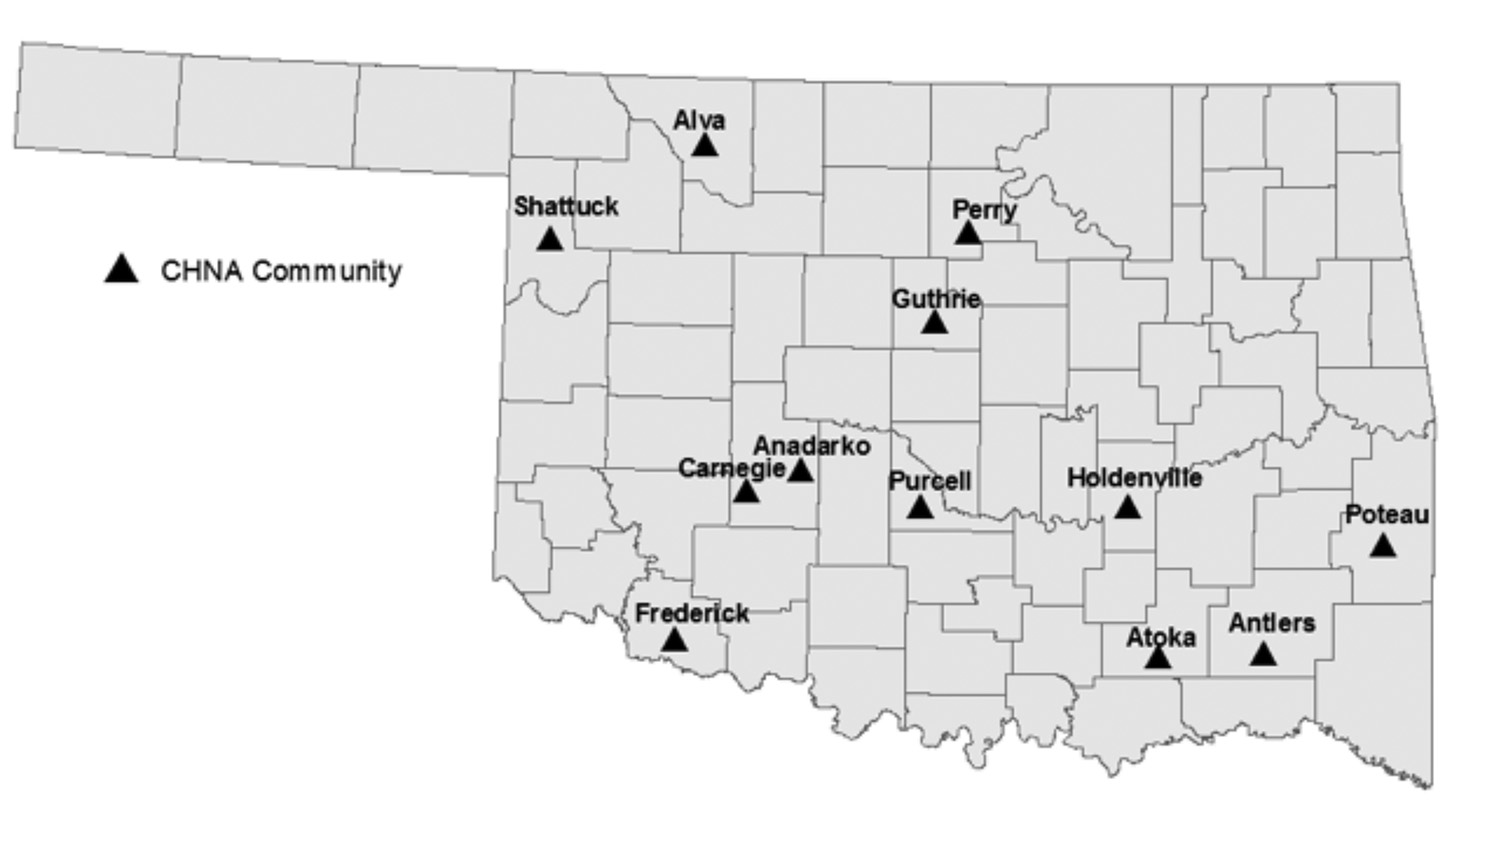 Oklahoma map showing community survey locations.